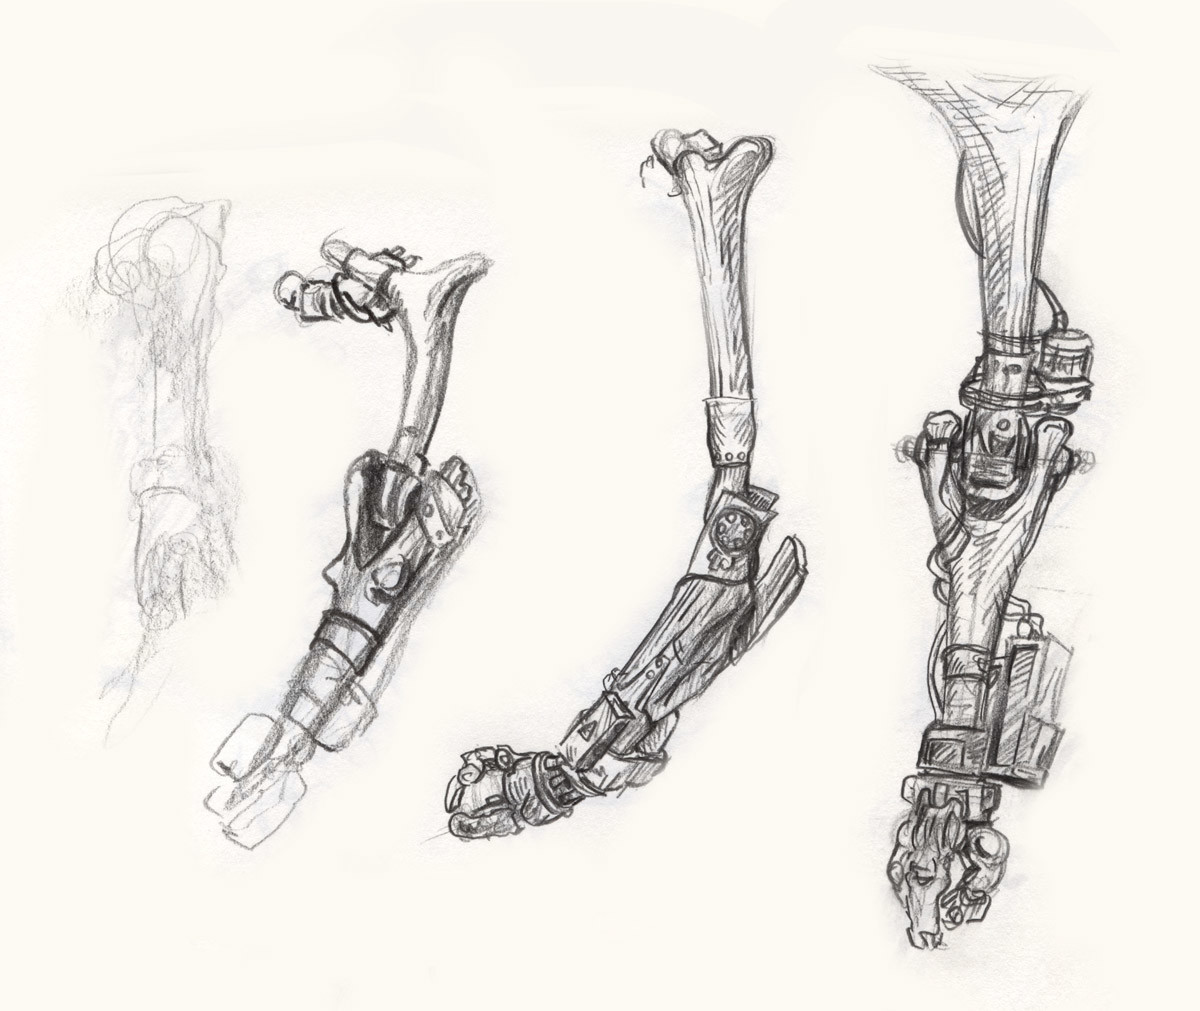 Artificial bone arm sketches